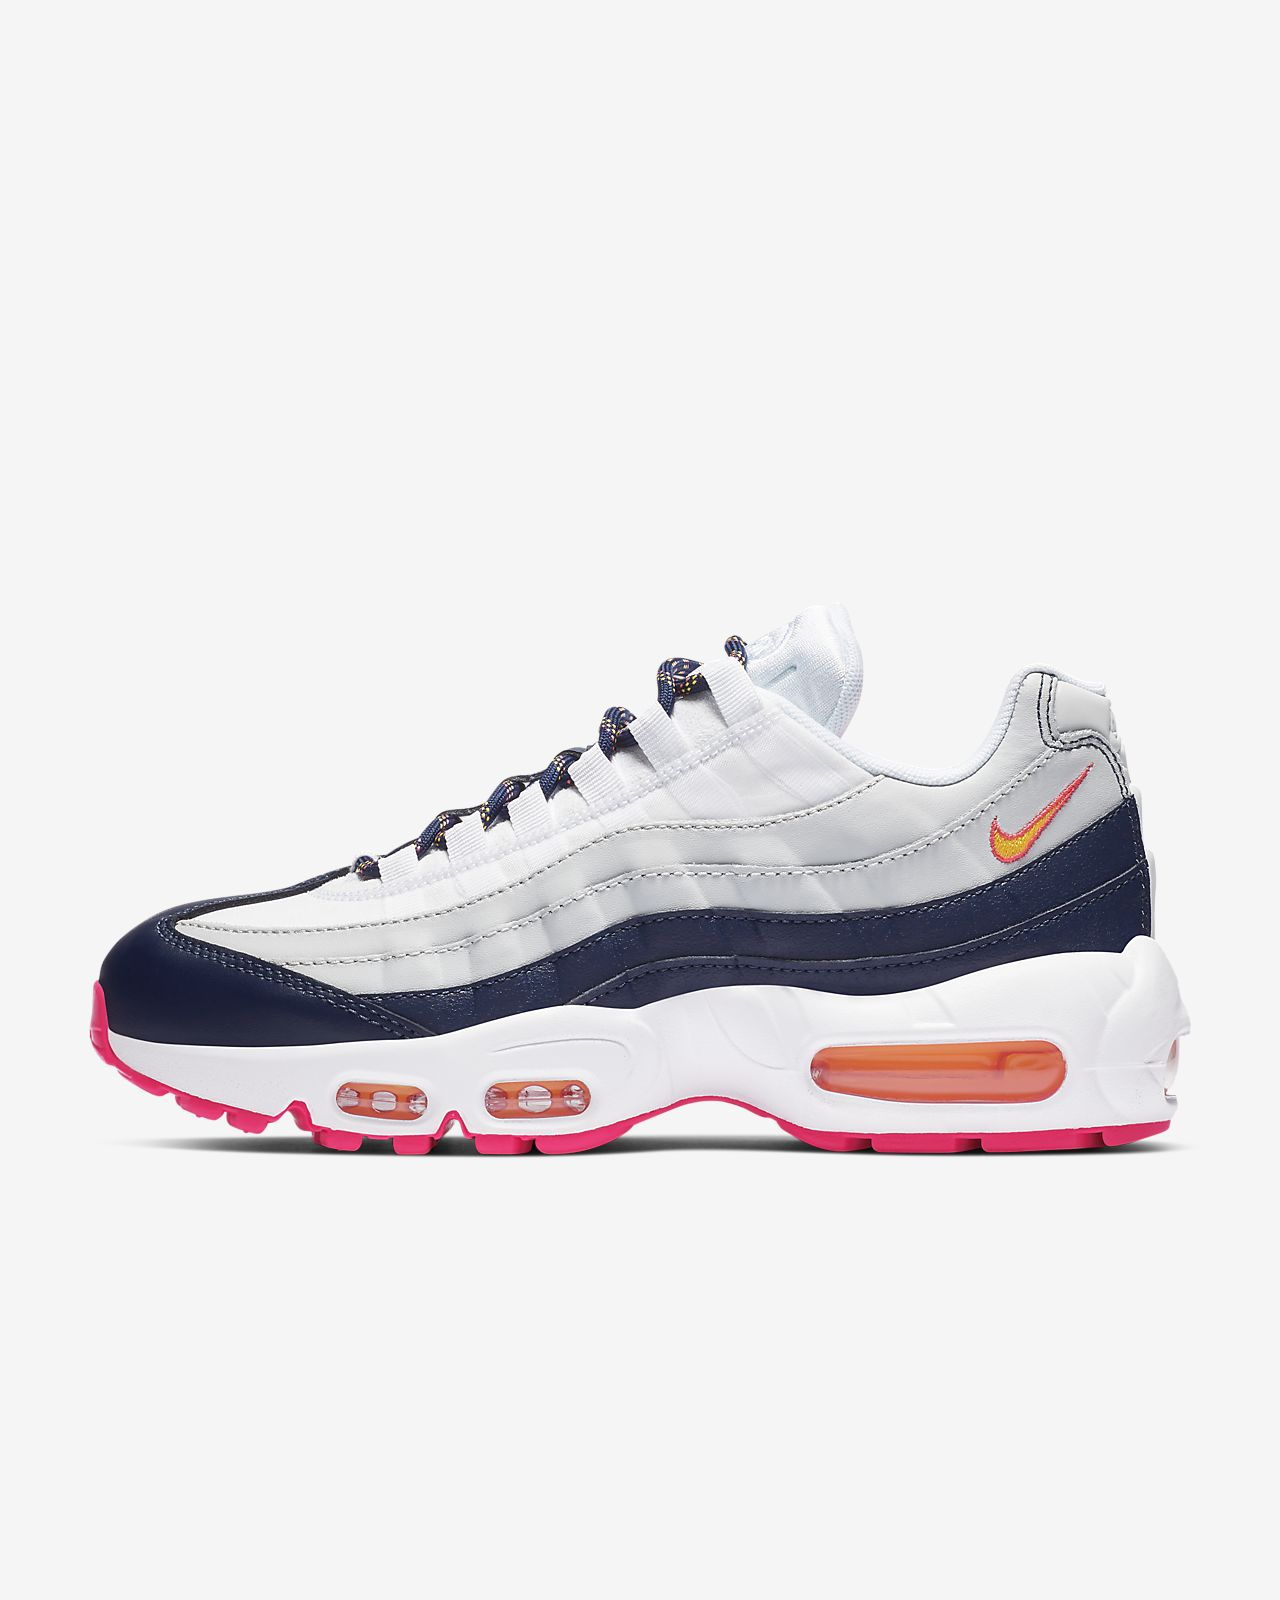 Women s Shoe. Nike Air Max 95 Premium ed51b490b